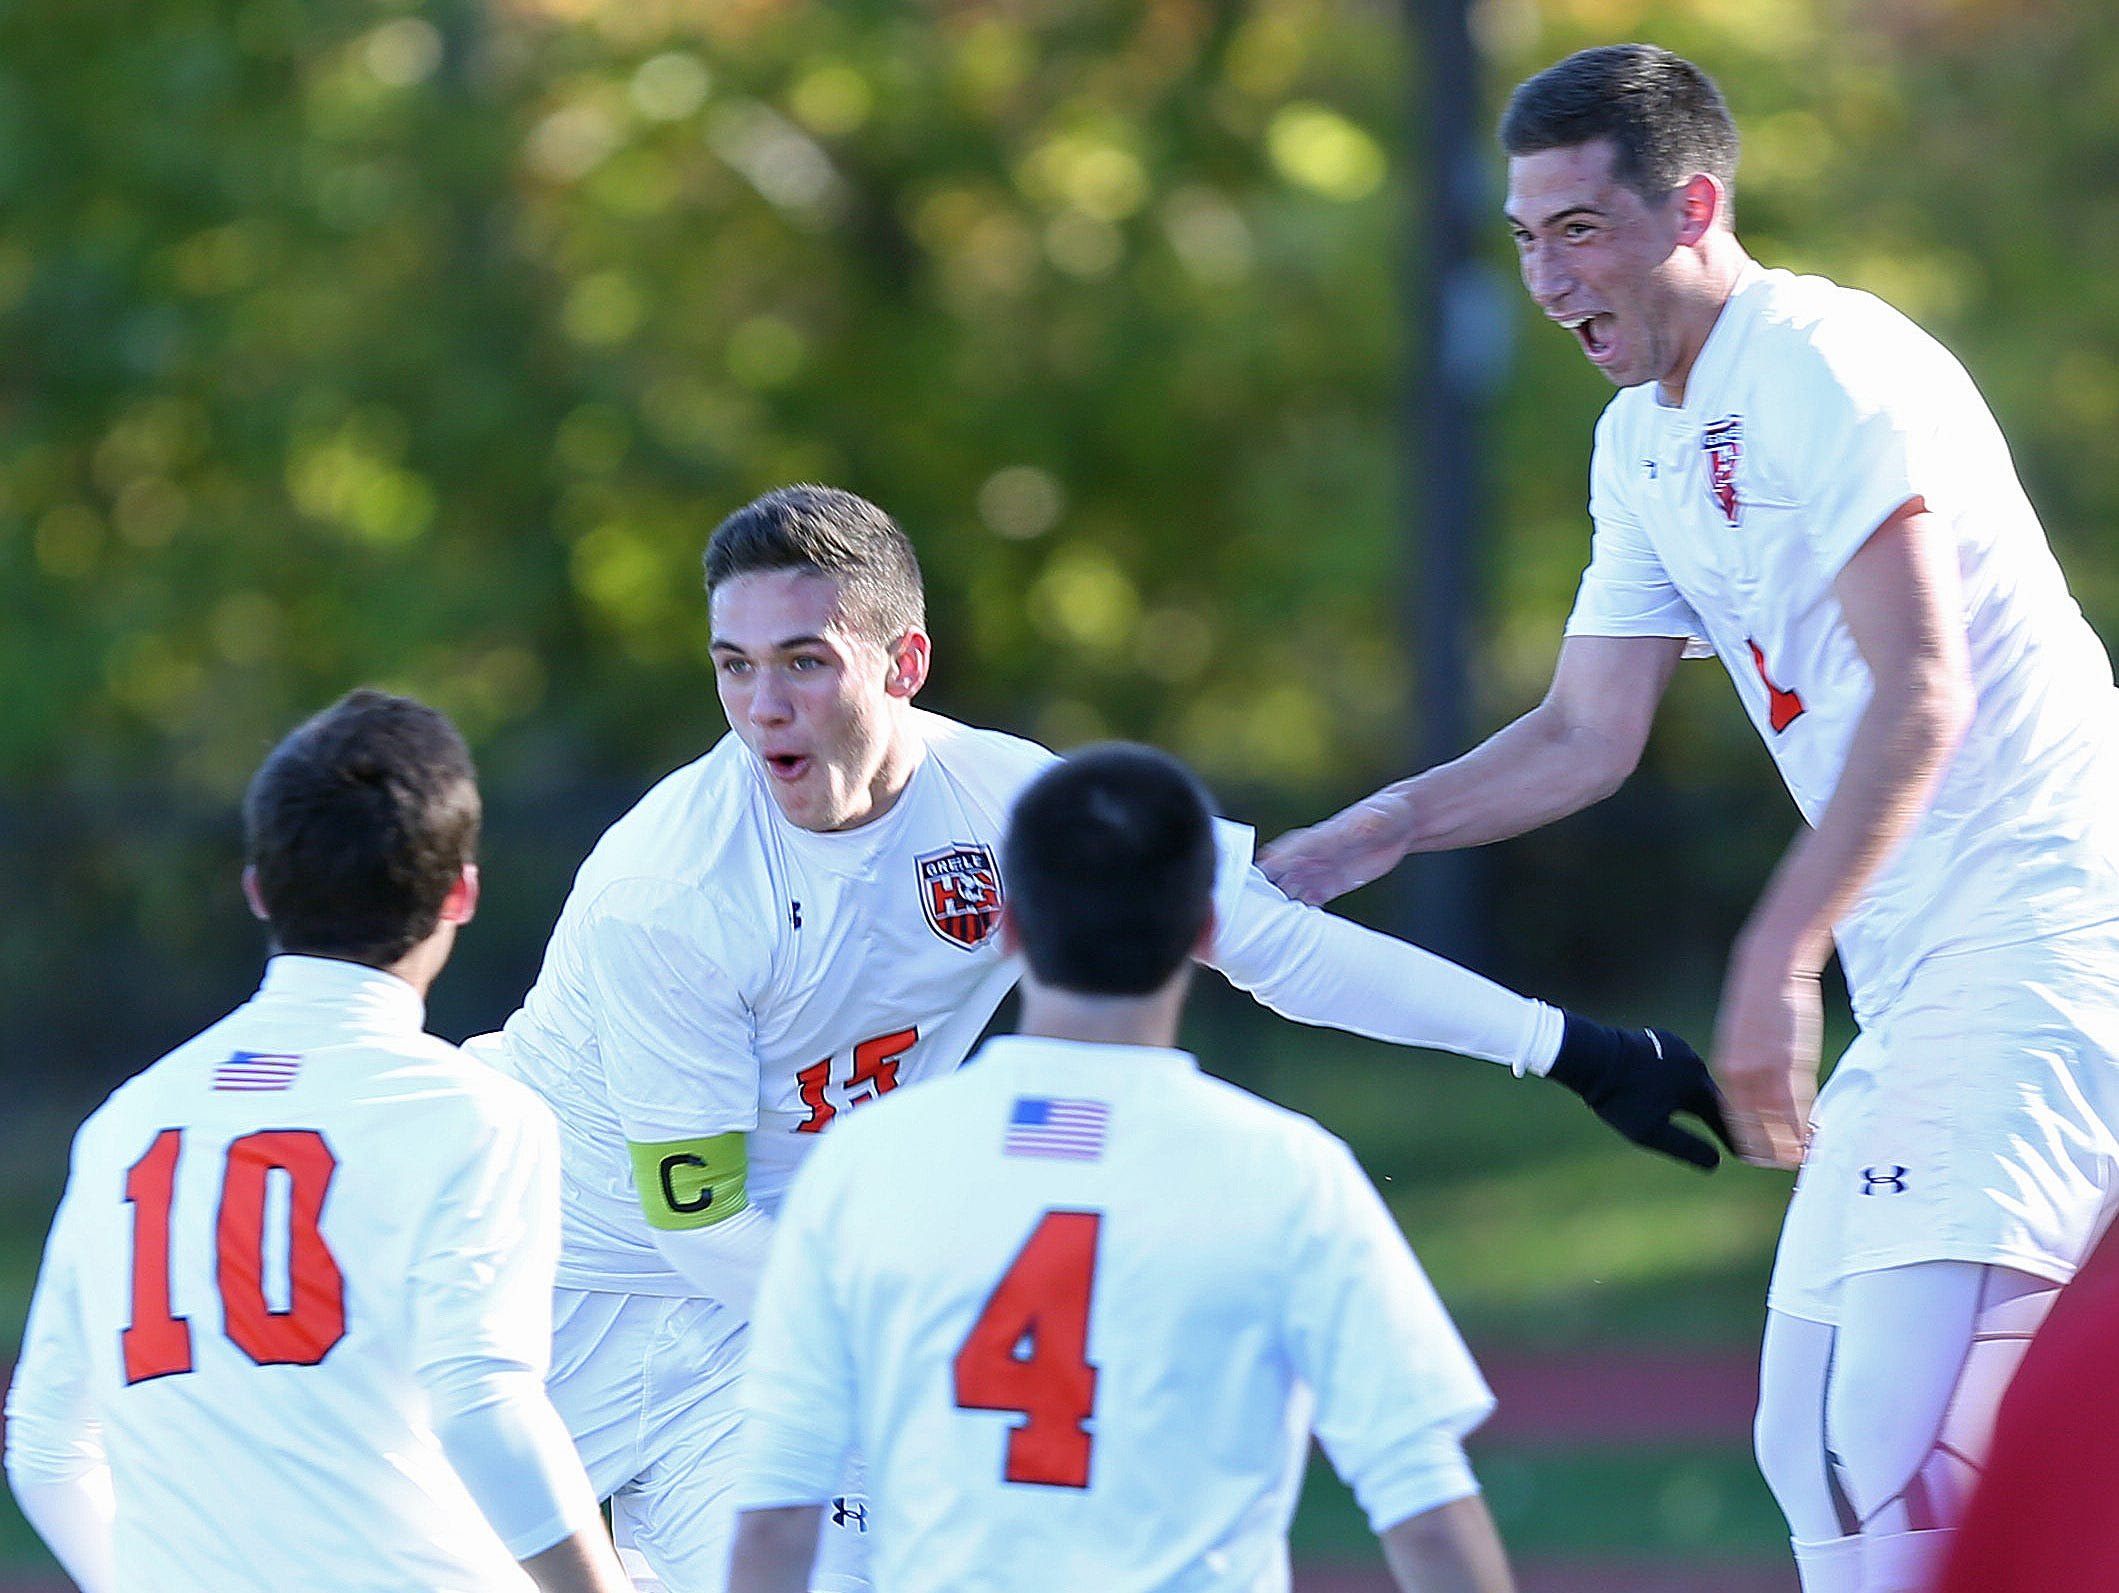 Greeley's Matt Neuberger (15) celebrates his first of three first half goals with teammates Danny Cannon (10), Jack Cohen (4) and Greg Ginsberg (11) during a boys soccer playoff game against North Rockland at Horace Greeley High School in Chappaqua Oct. 23, 2015.